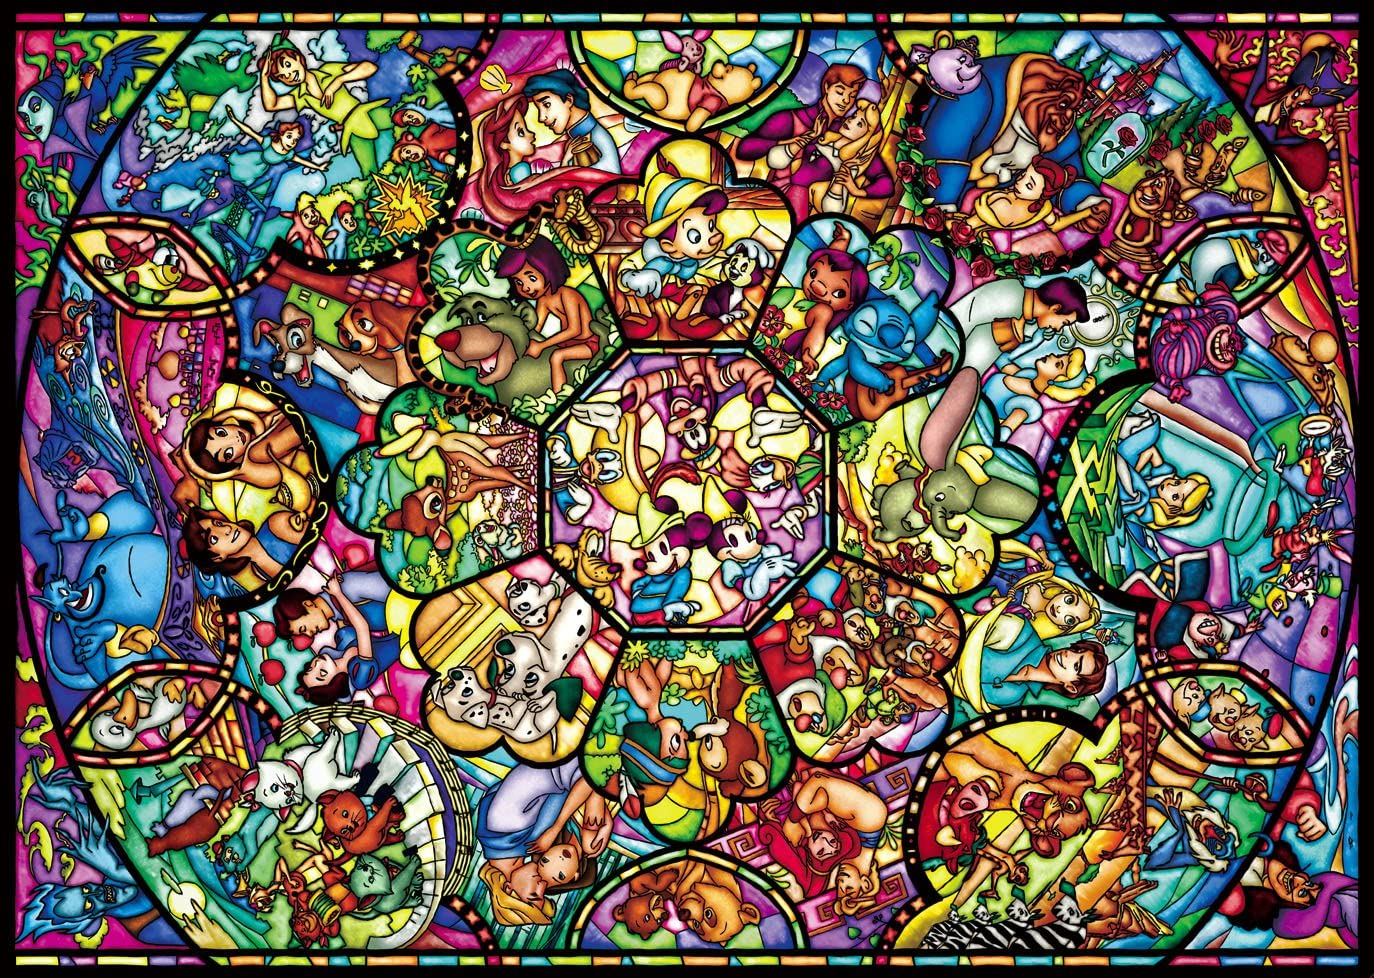 266 Piece 266 piece Disney characters Pure White All-Star Stained Glass 18.2×25.7cm